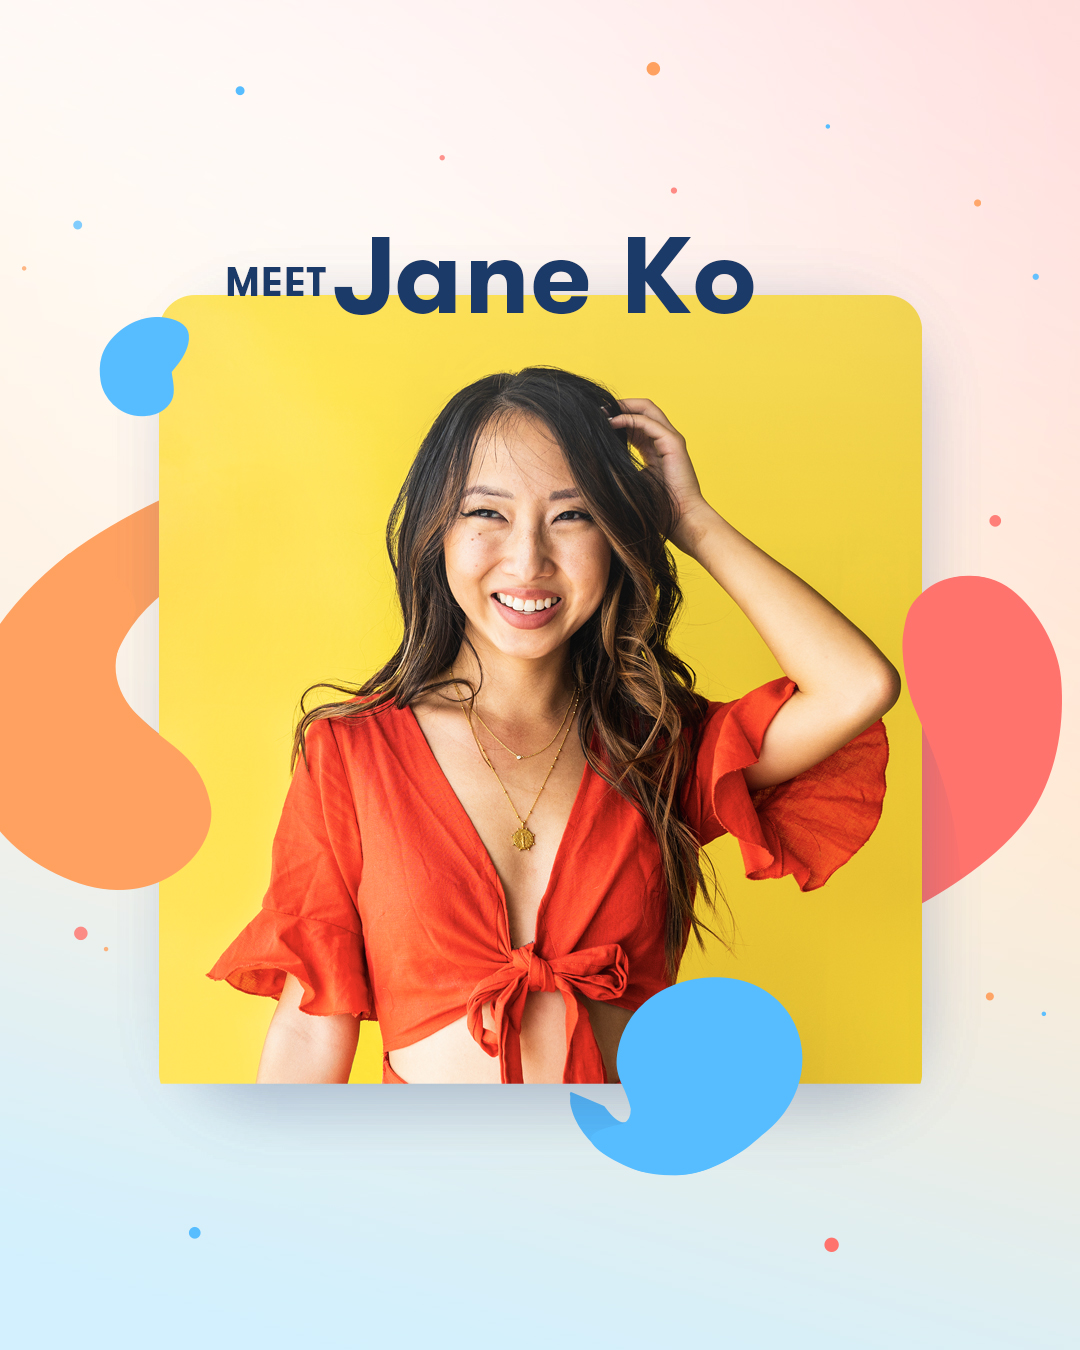 Jane Ko against a bright yellow backdrop, with her left hand in her curled hair. She is wearing a frilled red dress.